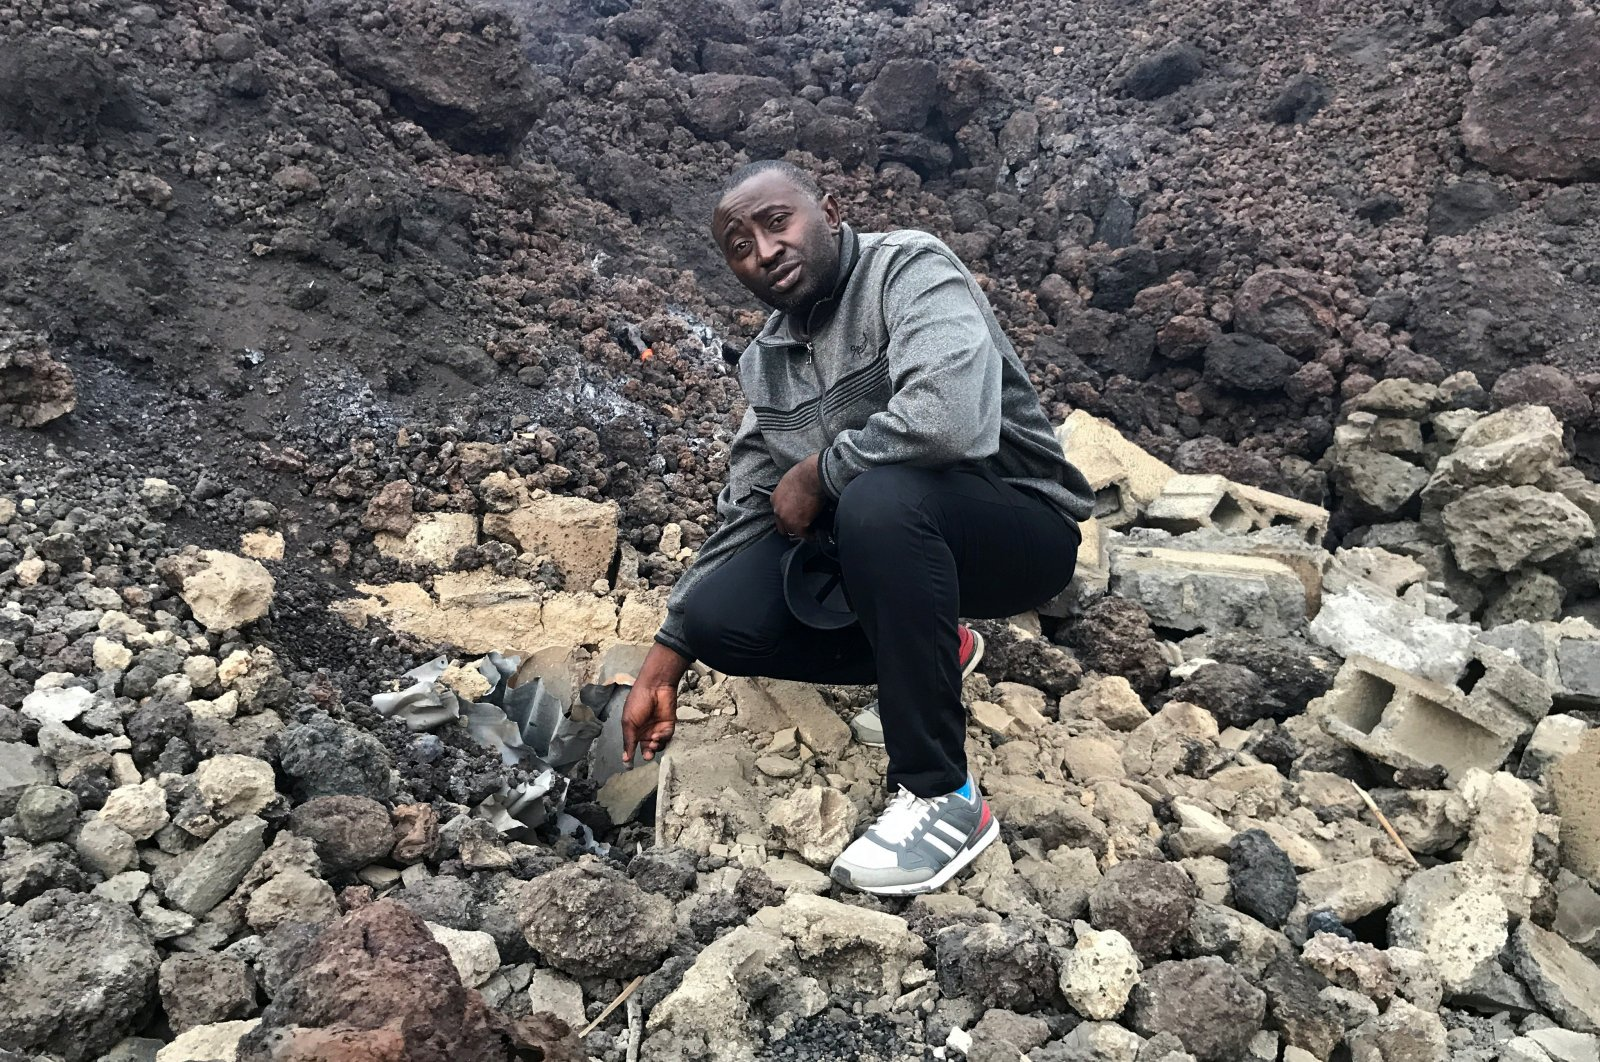 Nzanzu Muhiwa Zawadi, 37, points to the location of his house, which is covered by lava after the eruption of Mount Nyiragongo volcano, near Goma, in the Democratic Republic of Congo, May 24, 2021. (Reuters Photo)